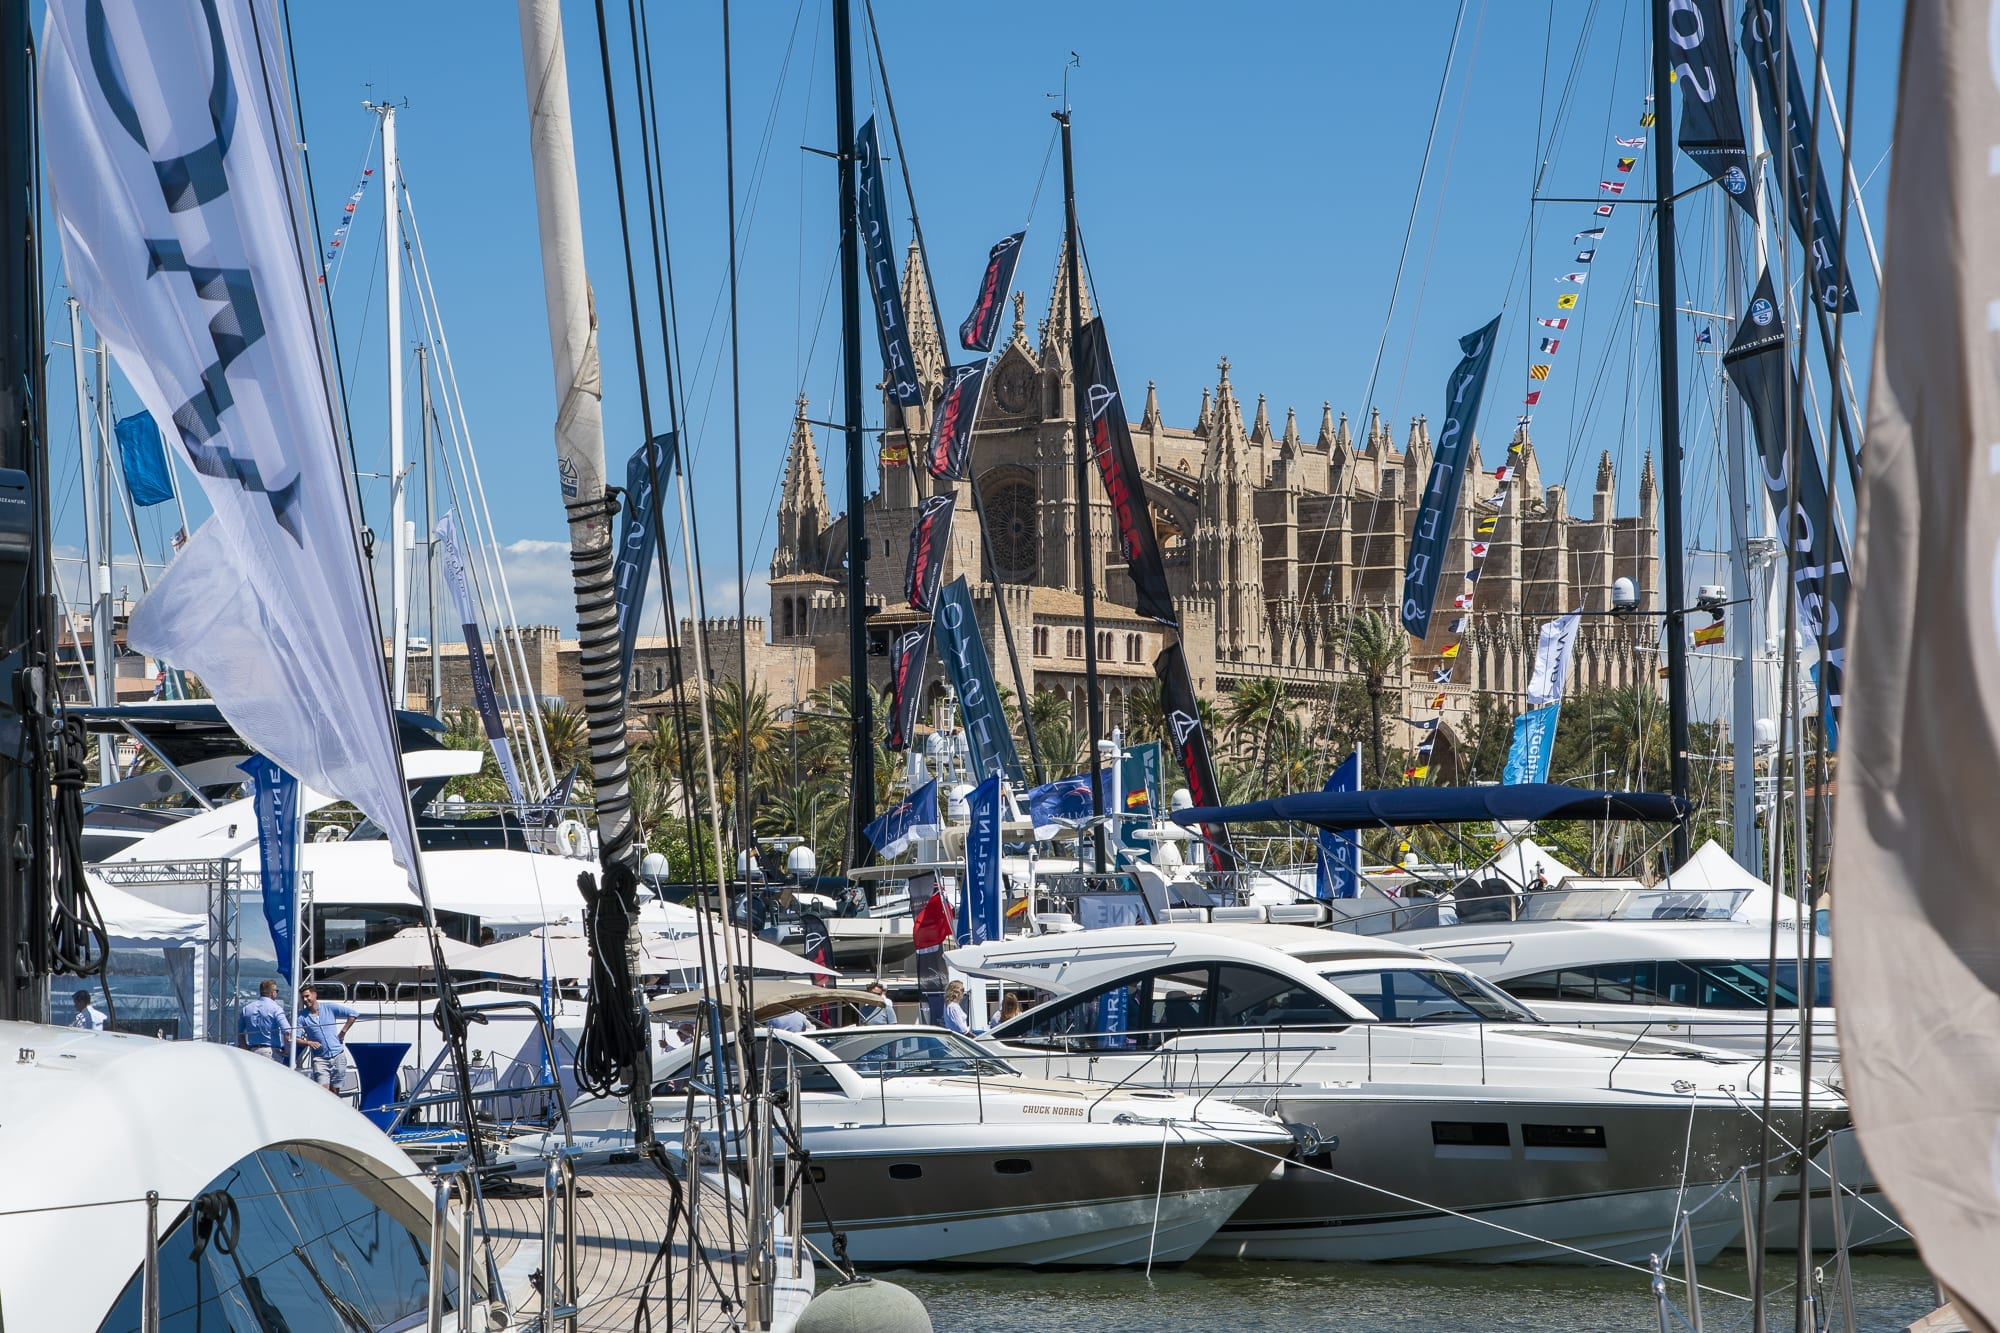 palma international boat show, The Balearic Marine Cluster strengthening the future of the Palma Boat Show, Yachts & Property